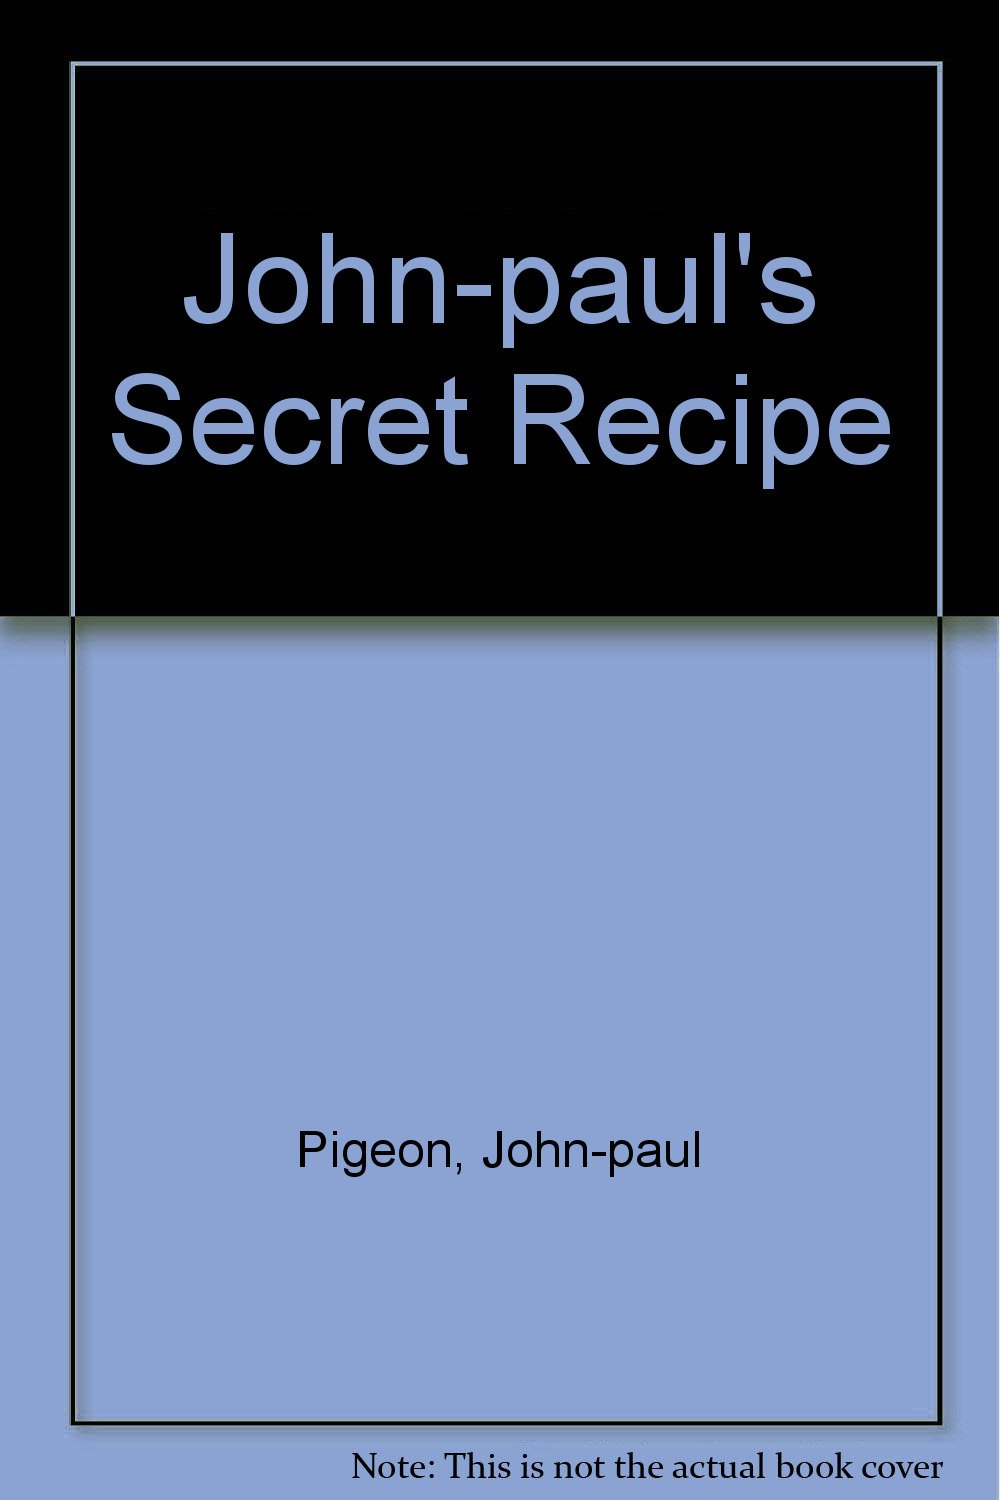 John-paul's Secret Recipe